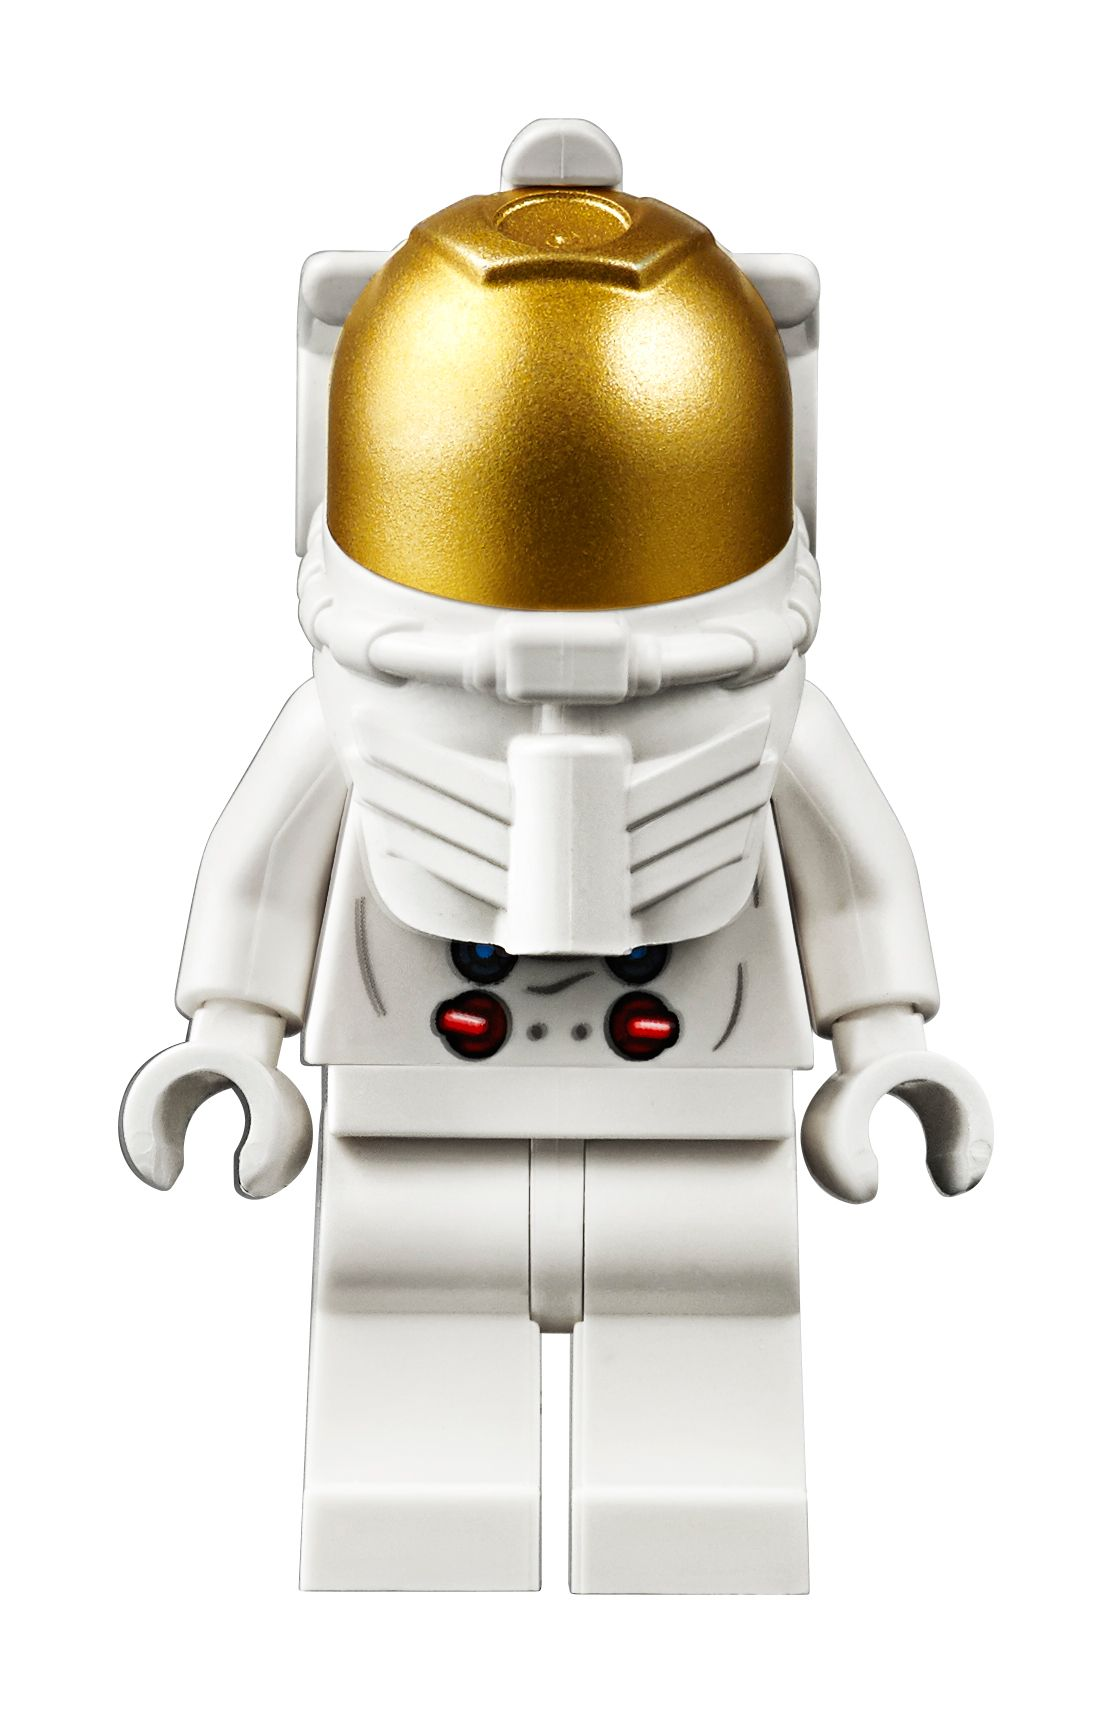 LEGO Advanced Models 10266 NASA Apollo 11 Mondlandefähre LEGO_10266_alt18.jpg